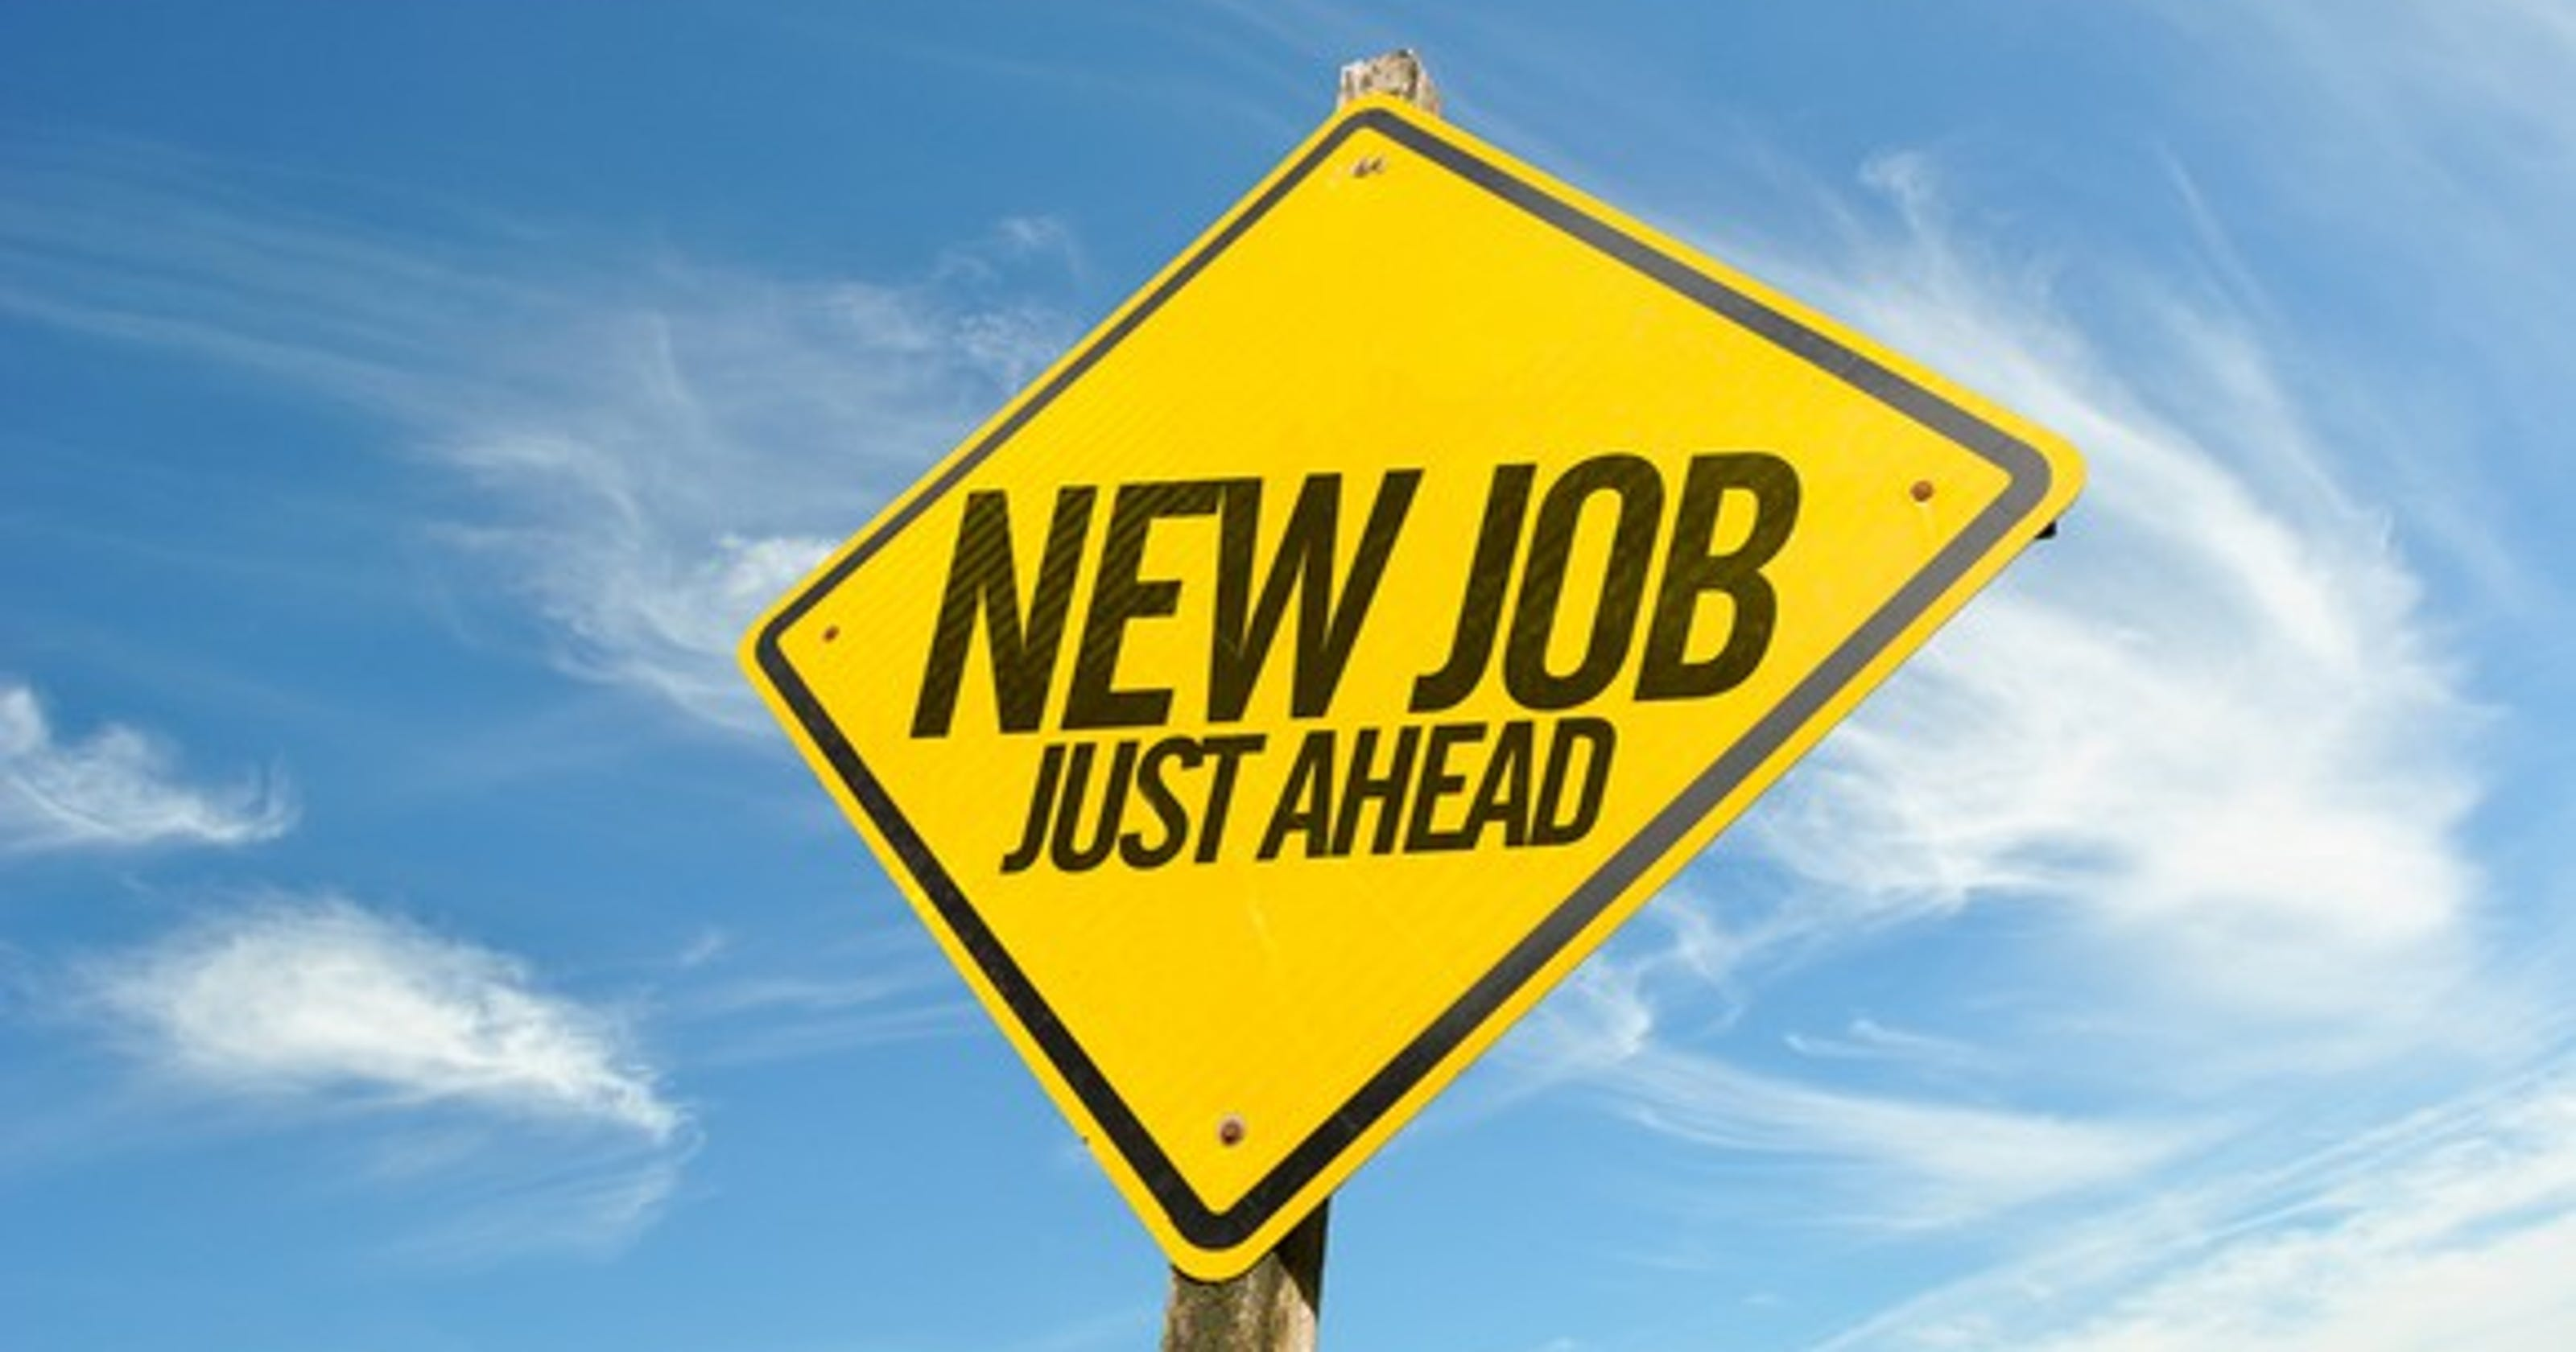 summer job outlook 5 hot jobs employers are hiring for